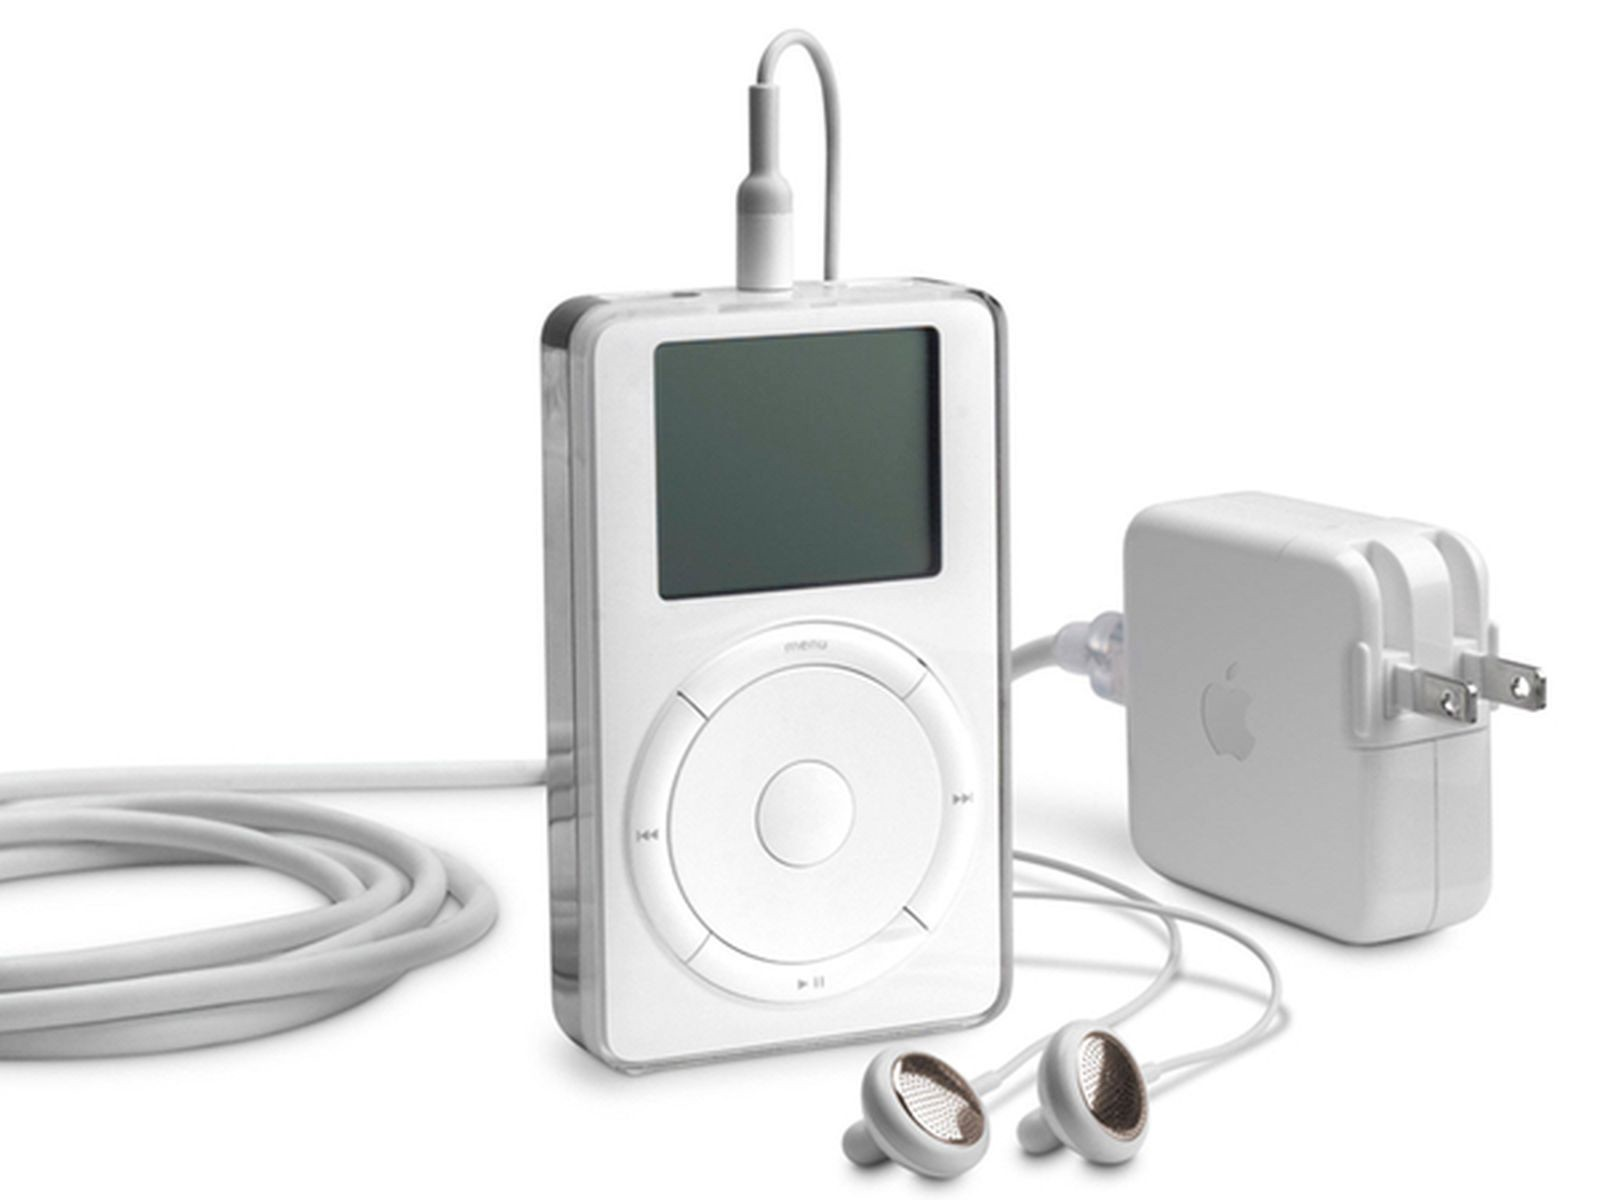 The innovative iPod design was a product of careful User Experience Analysis